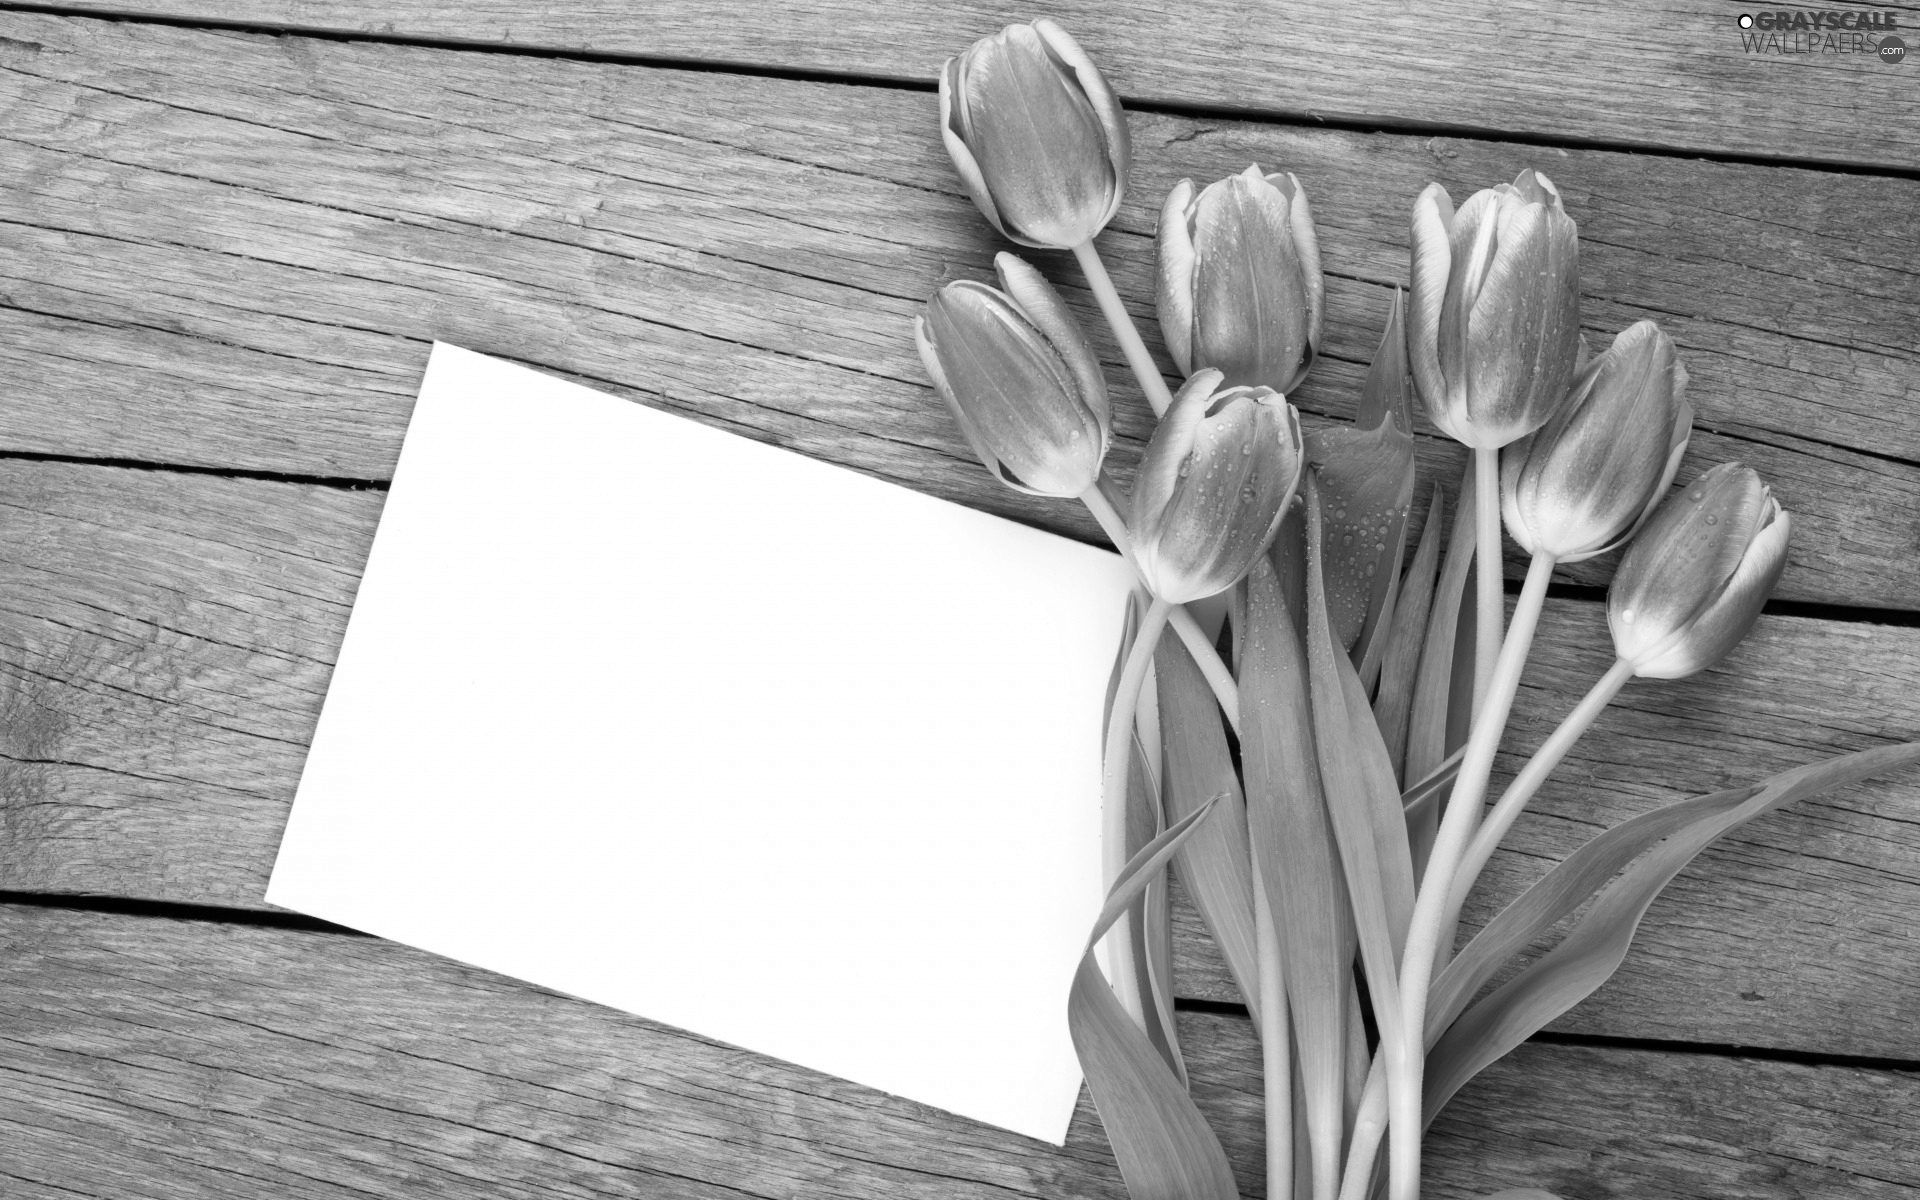 Tulips, bouquet, card, Red-White, Flowers, Leaf, boarding